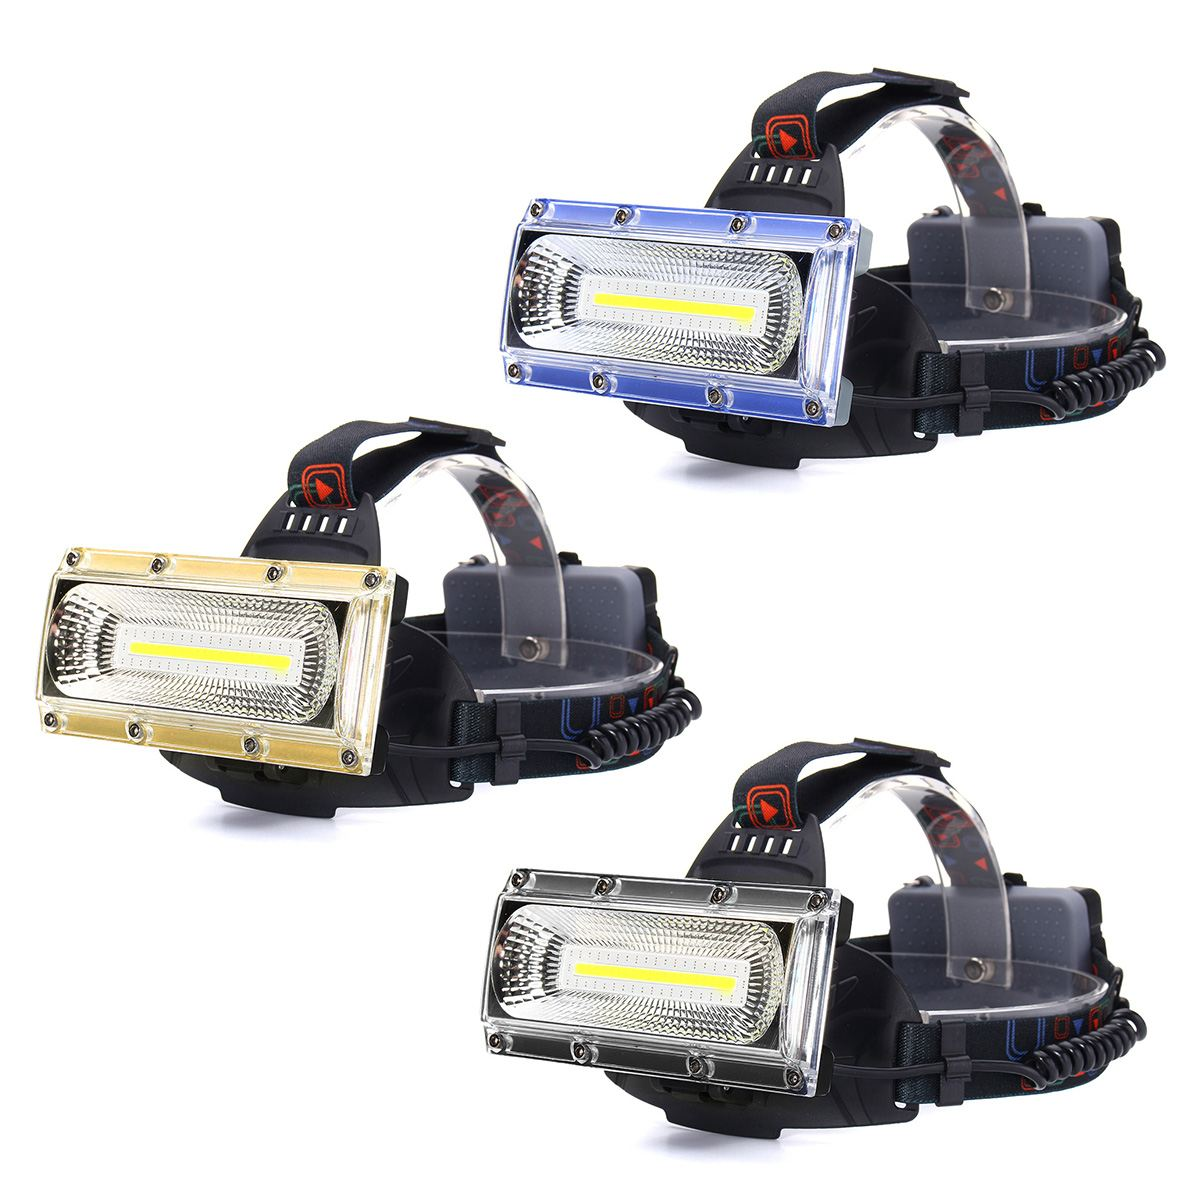 1300LM 30W COB LED Headlamp Three Lighting Modes Adjustable Base for MTB Bike Cycling 18650 Led Lights with Headband Daily Use